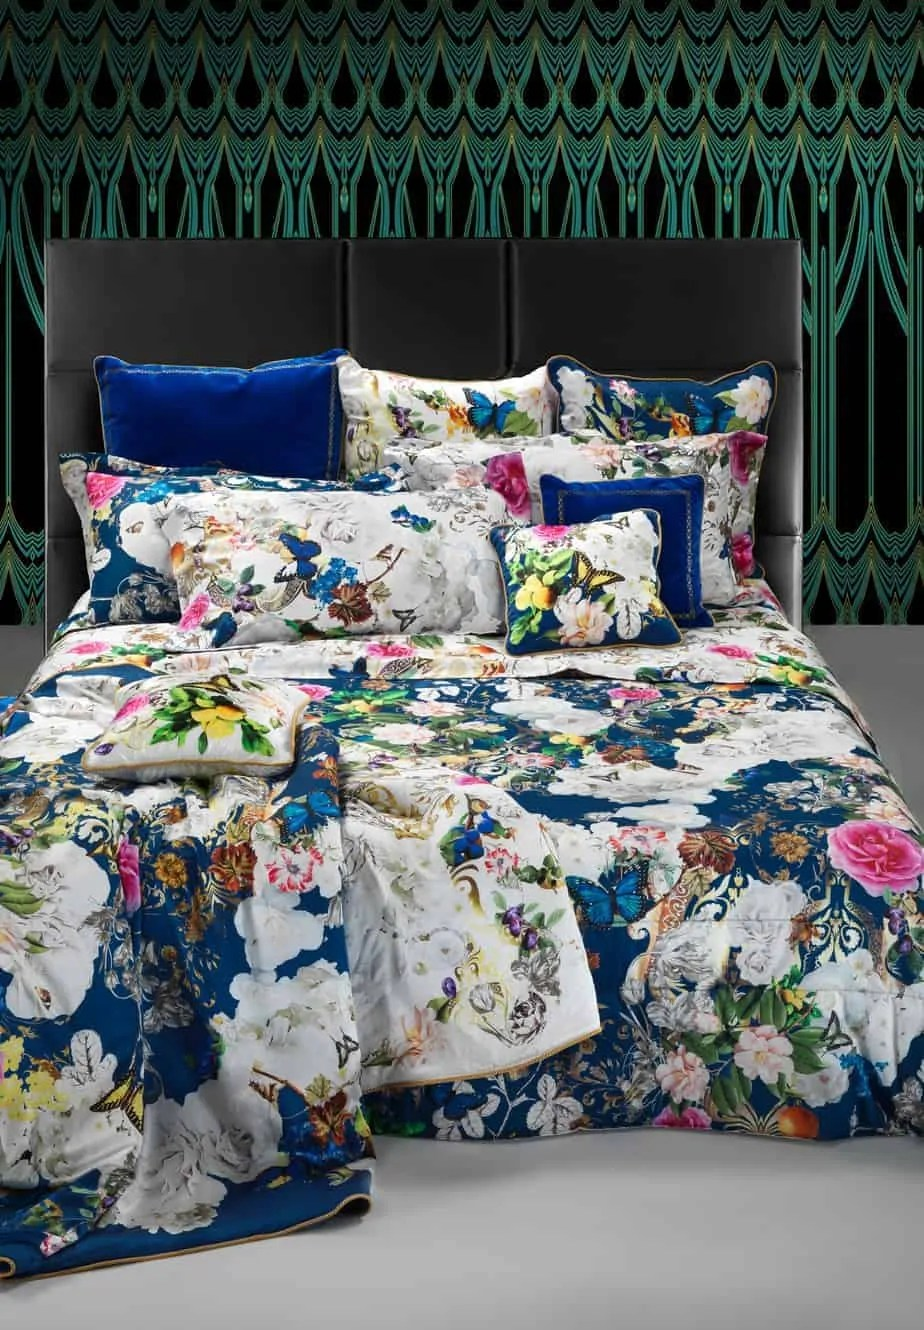 roberto cavalli bedding beddengoed dekbedovertrek blaze blue